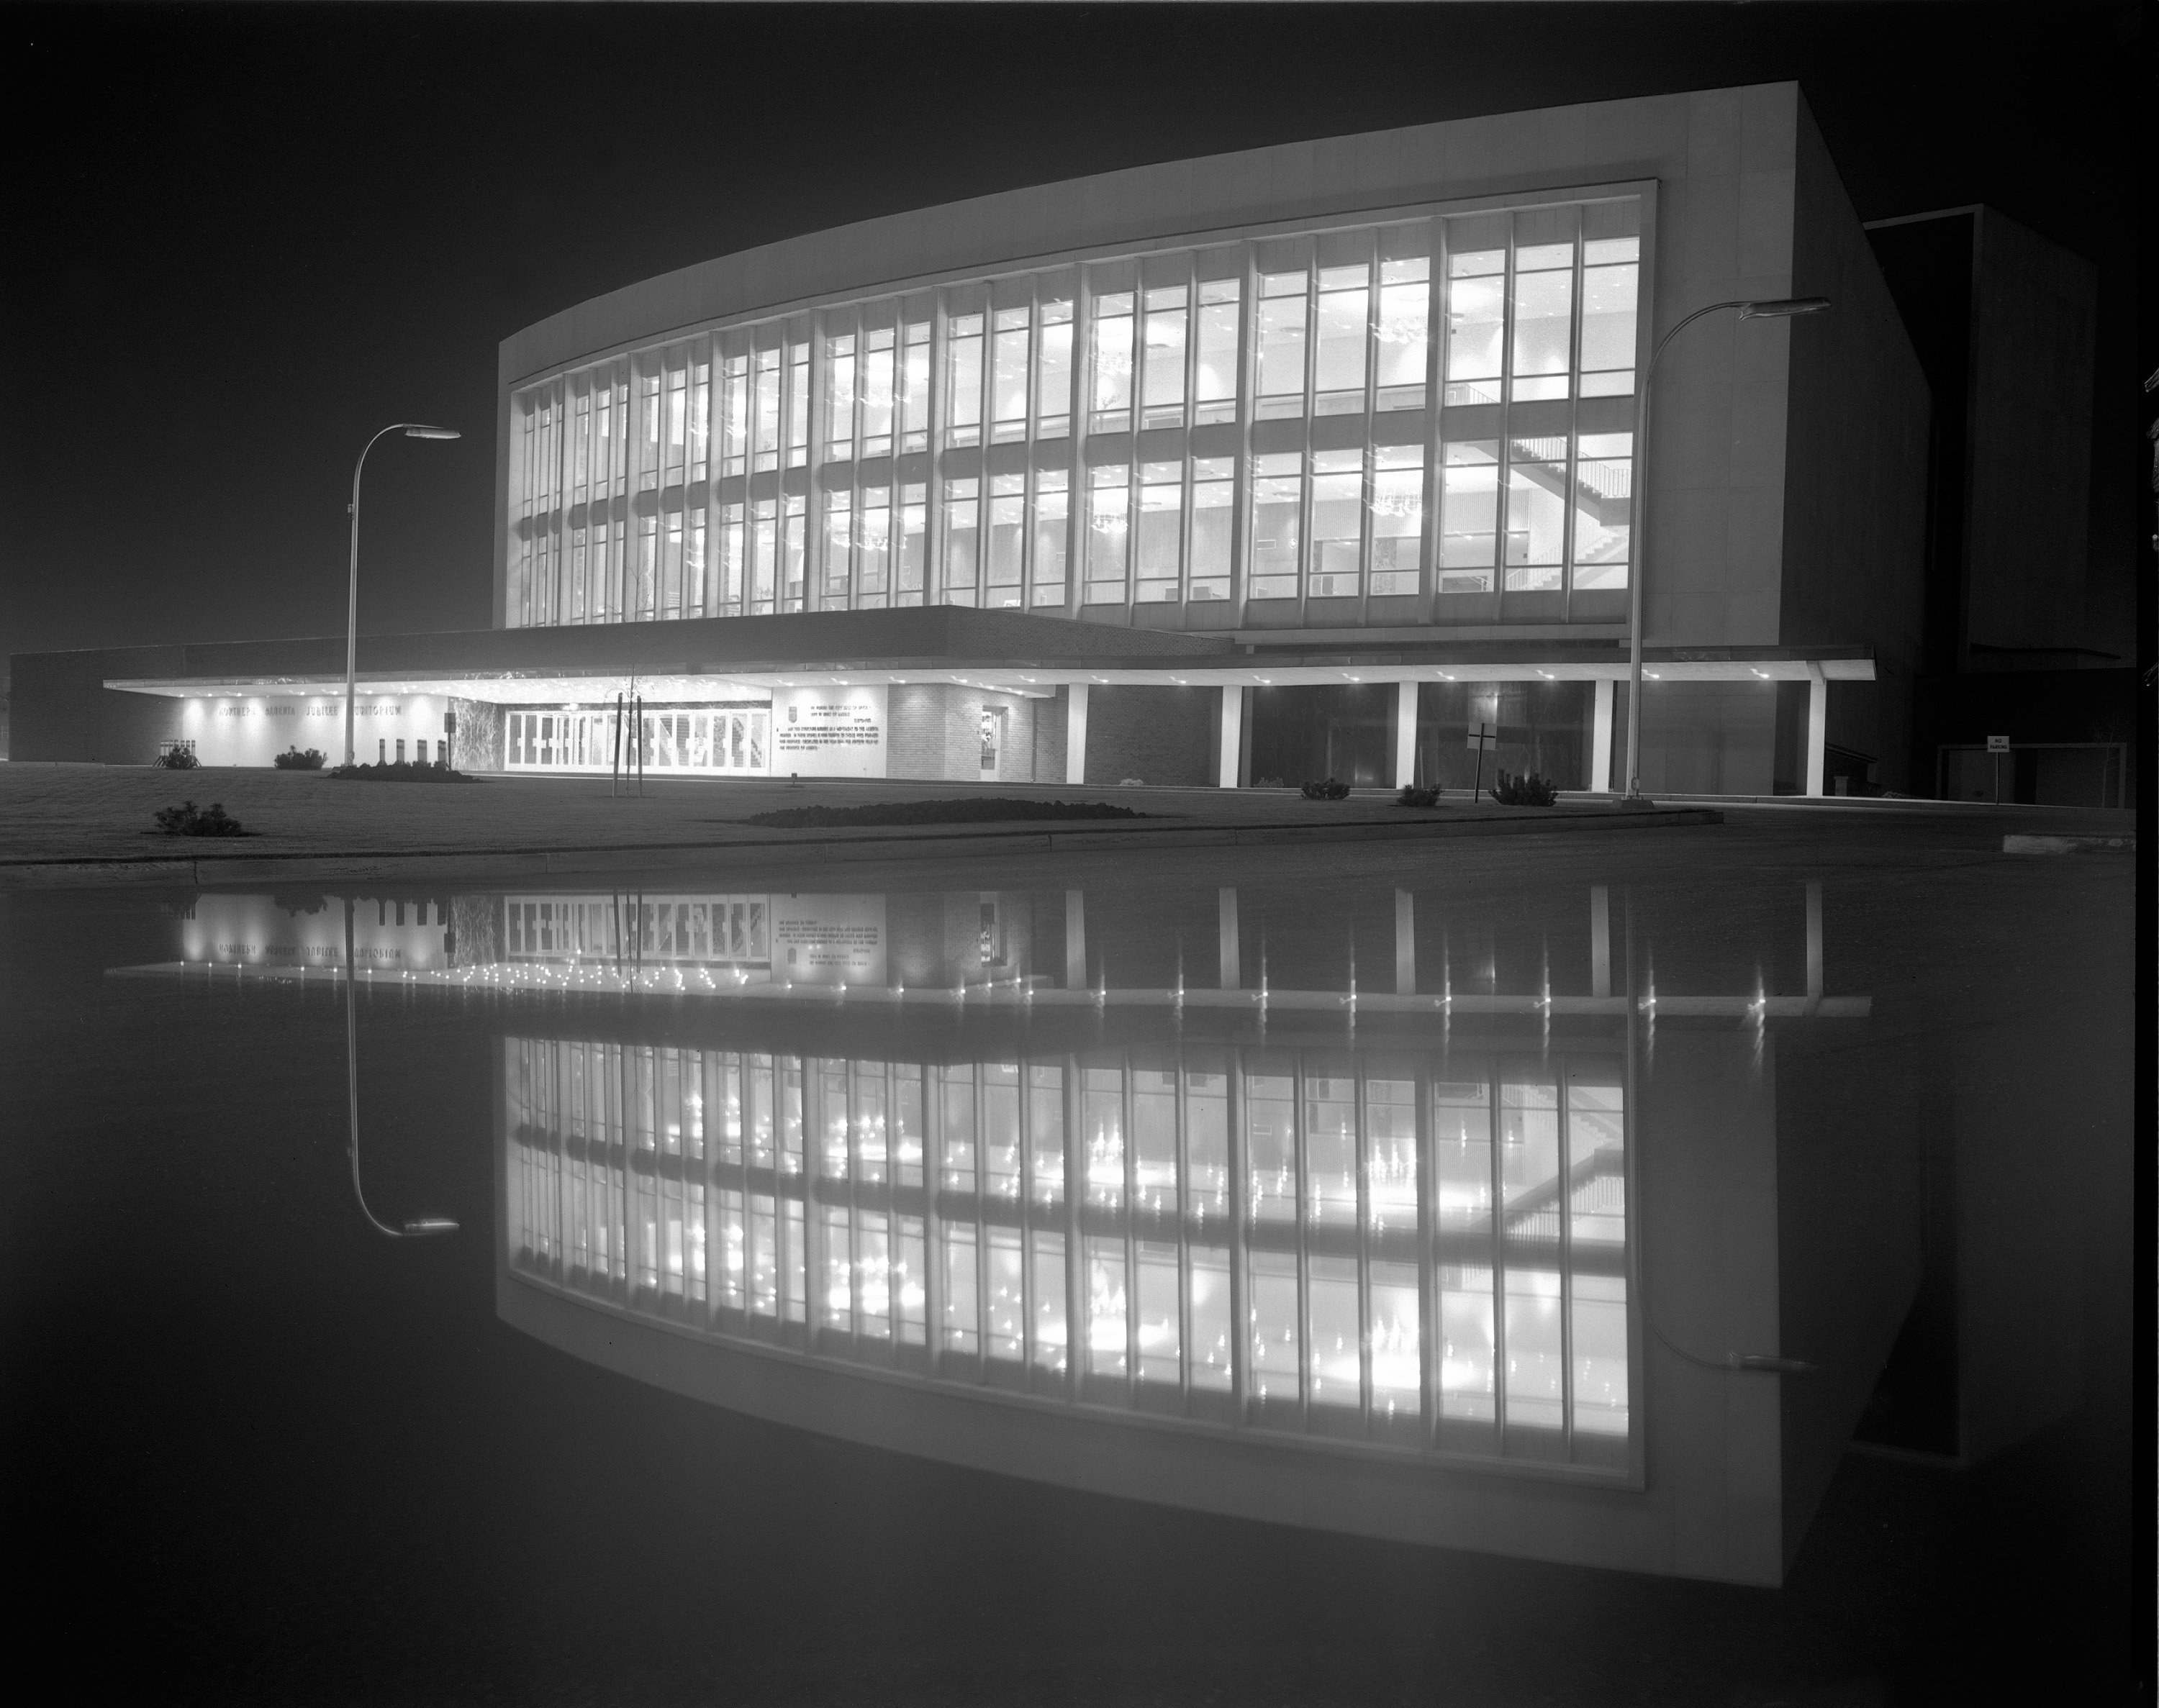 Mirrored Image of one of Alberta'a Jubilee Auditoria